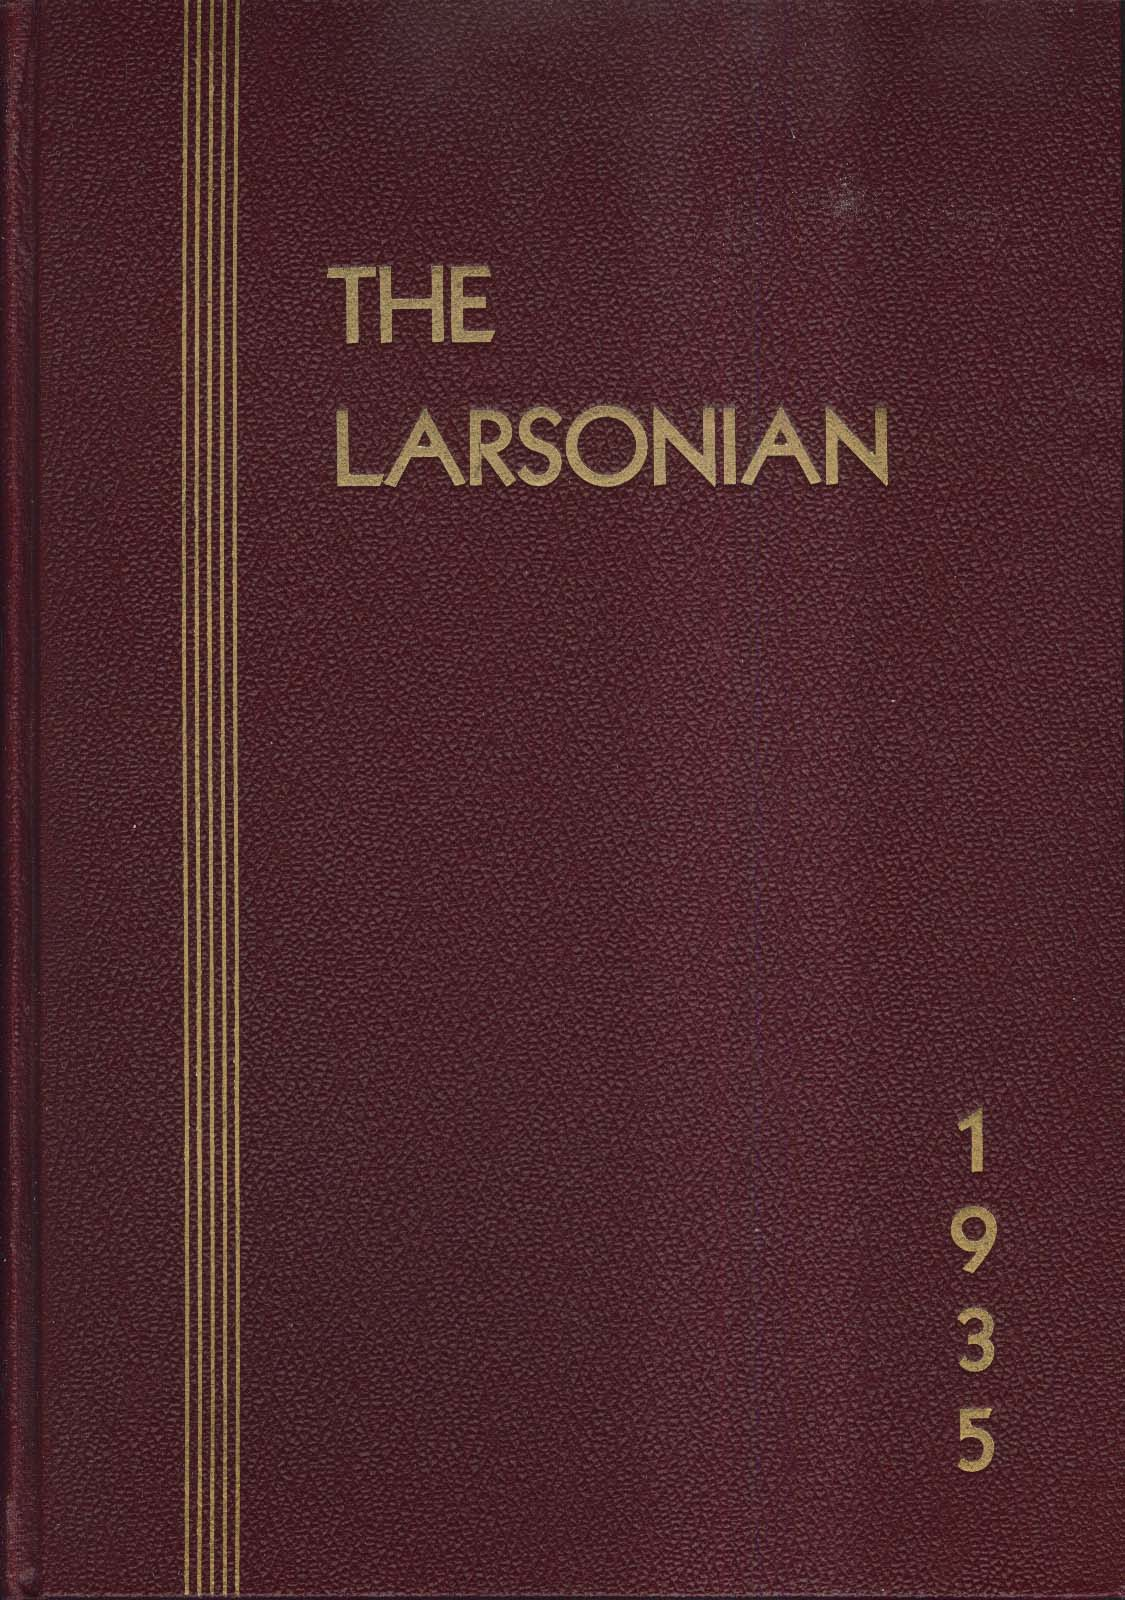 Image for The Larsonian Larson Junior College New Haven Connecticut CT 1935 Yearbook